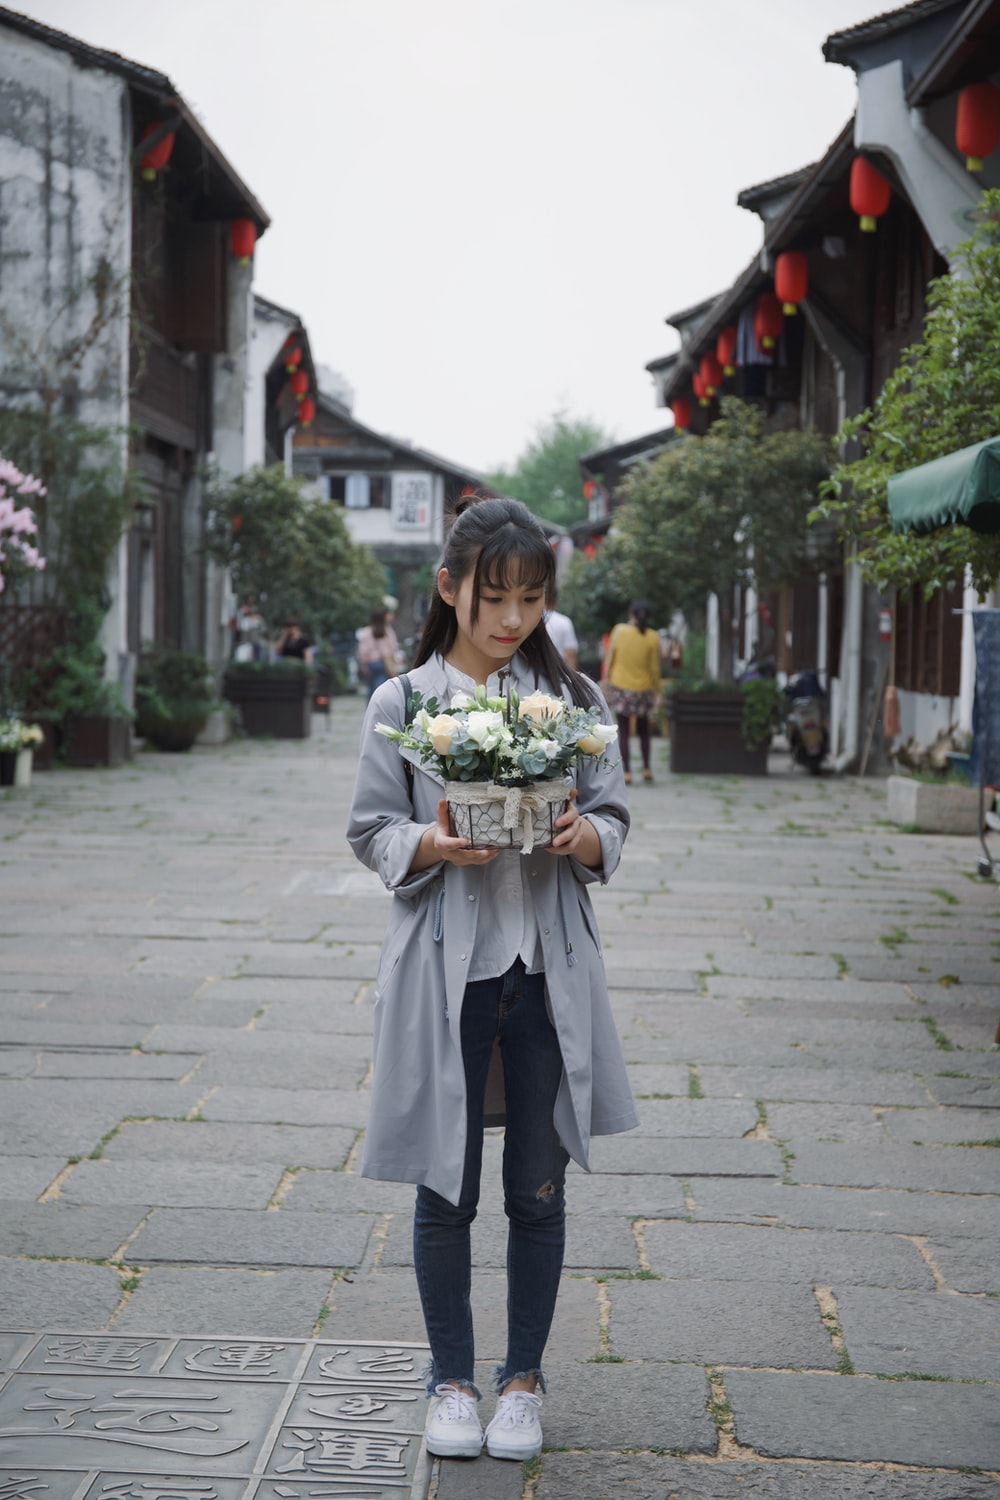 woman holding flowers on basket